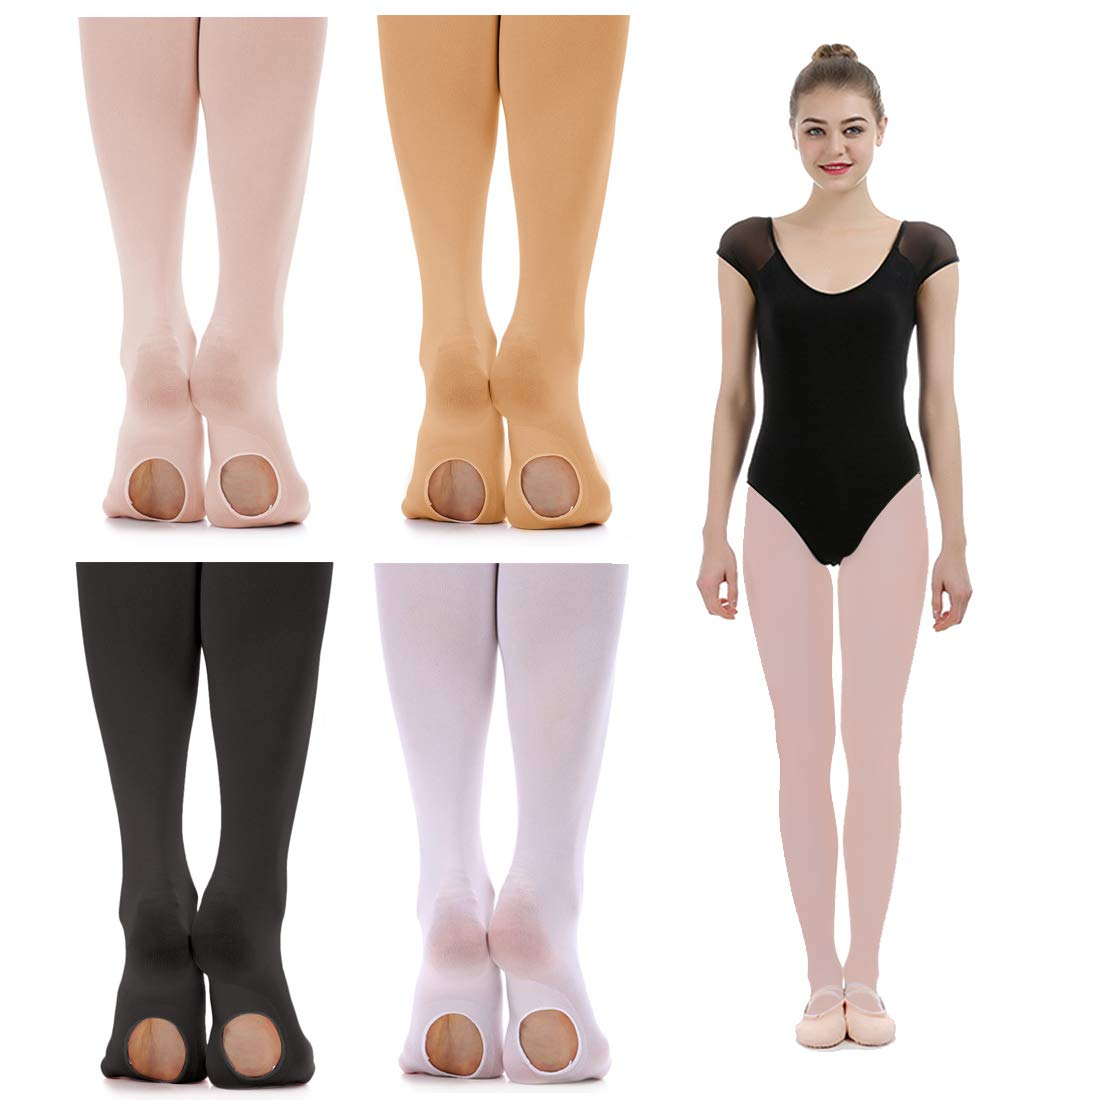 Velet Convertible Ballerina Dancing Stockings iMucci Ballet Dance Tights